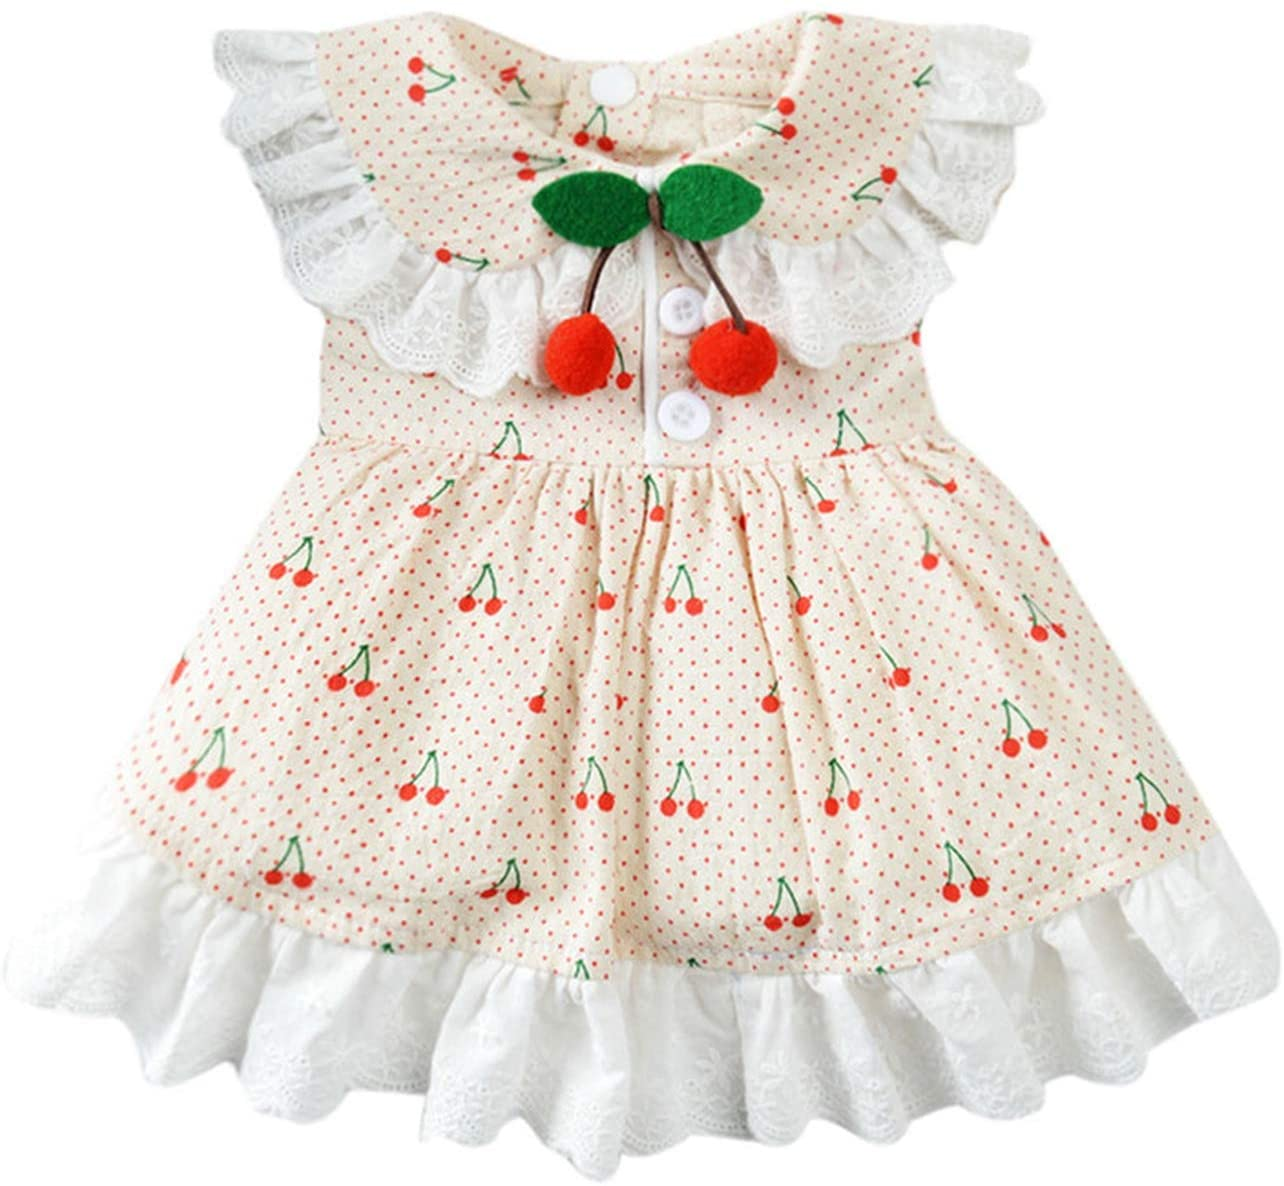 sunnyday-shop Pastoral Cherry Print Dog Dress Pet Vintage Dresses Ruffle Lace Dog Clothes Puppy Small Dog Outfit Pet Clothing